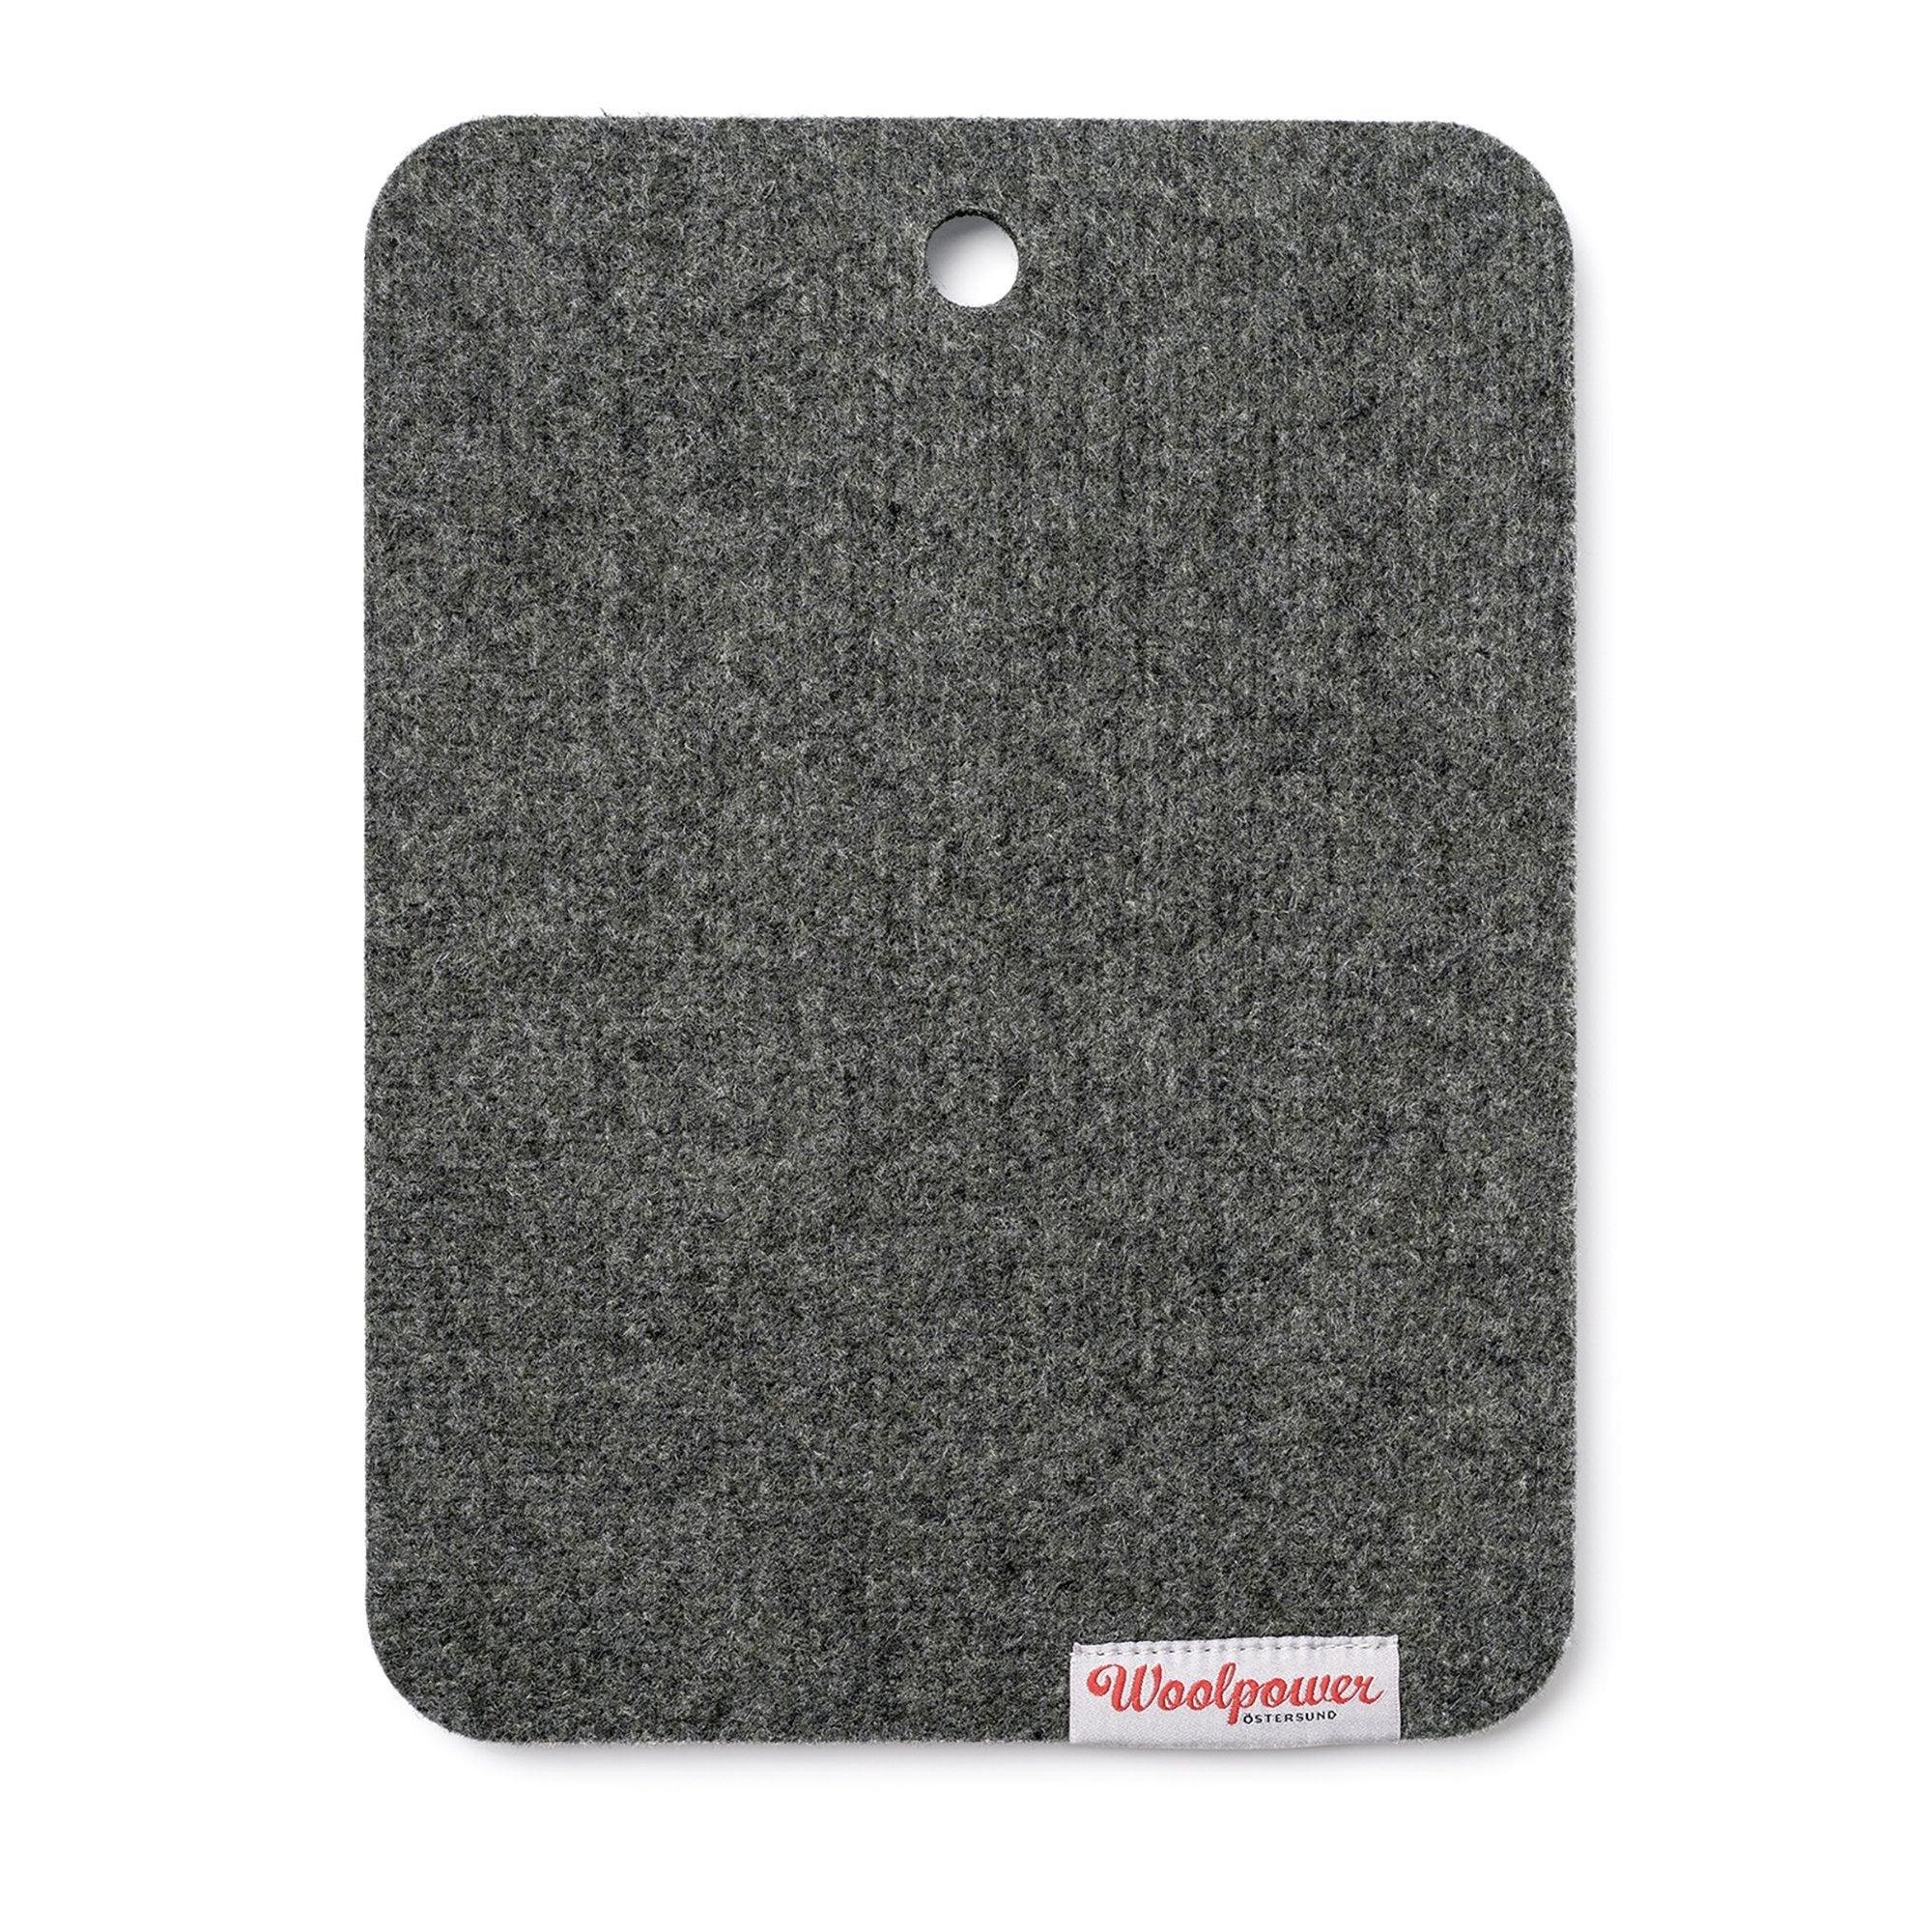 Sit Pad - Recycled Grey - Vindpinad